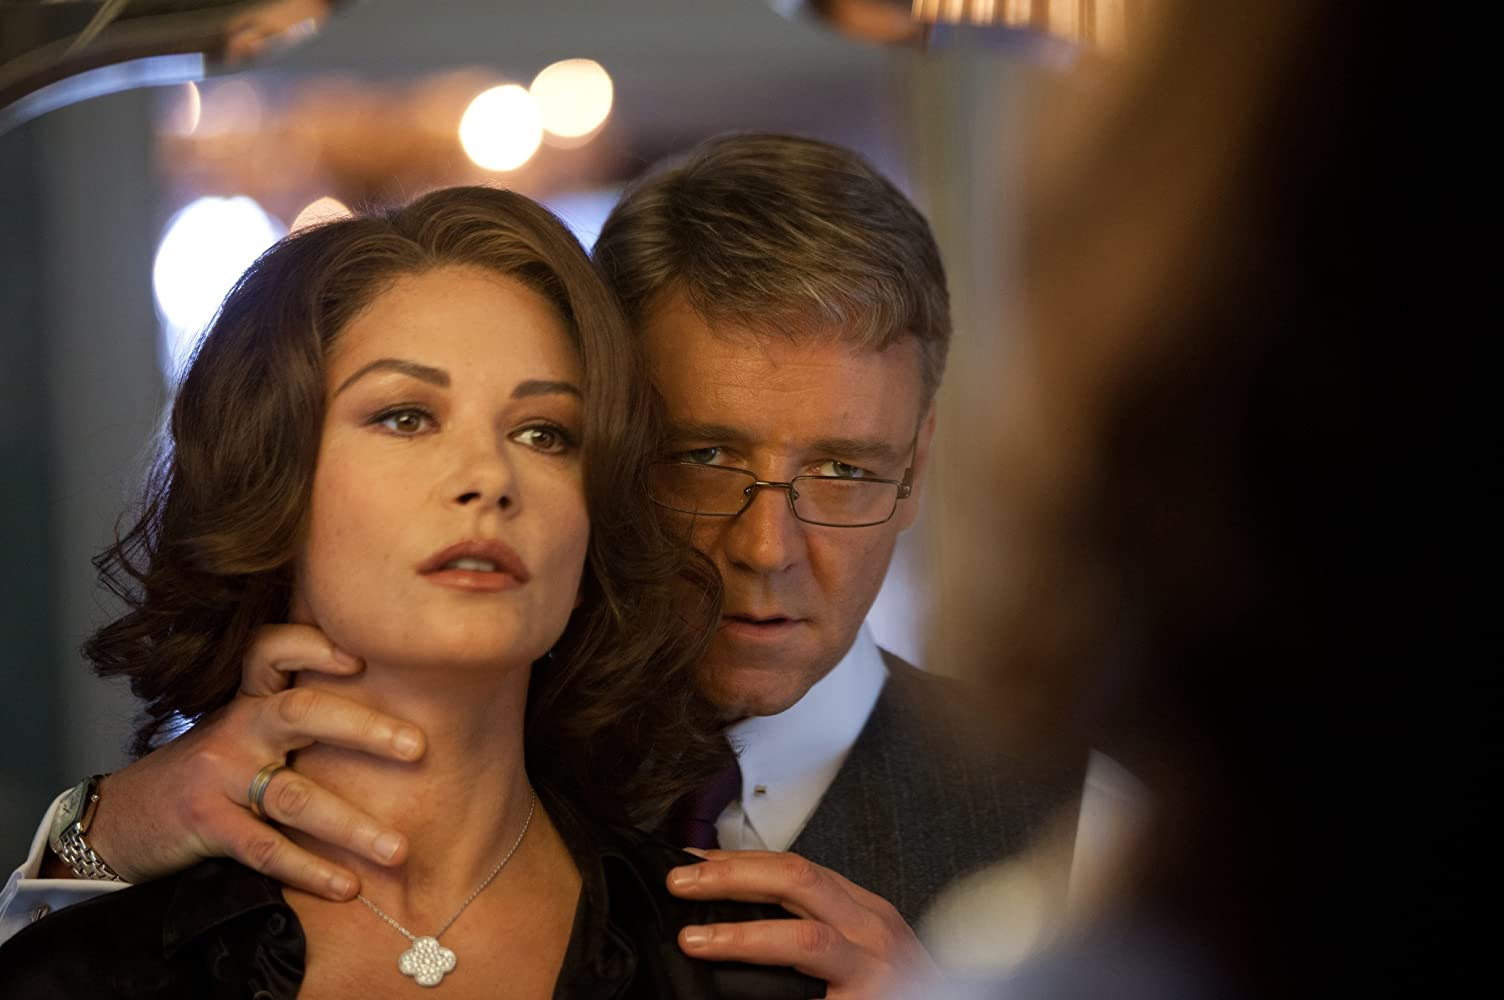 Russell Crowe and Catherine Zeta-Jones in Broken City (2013)